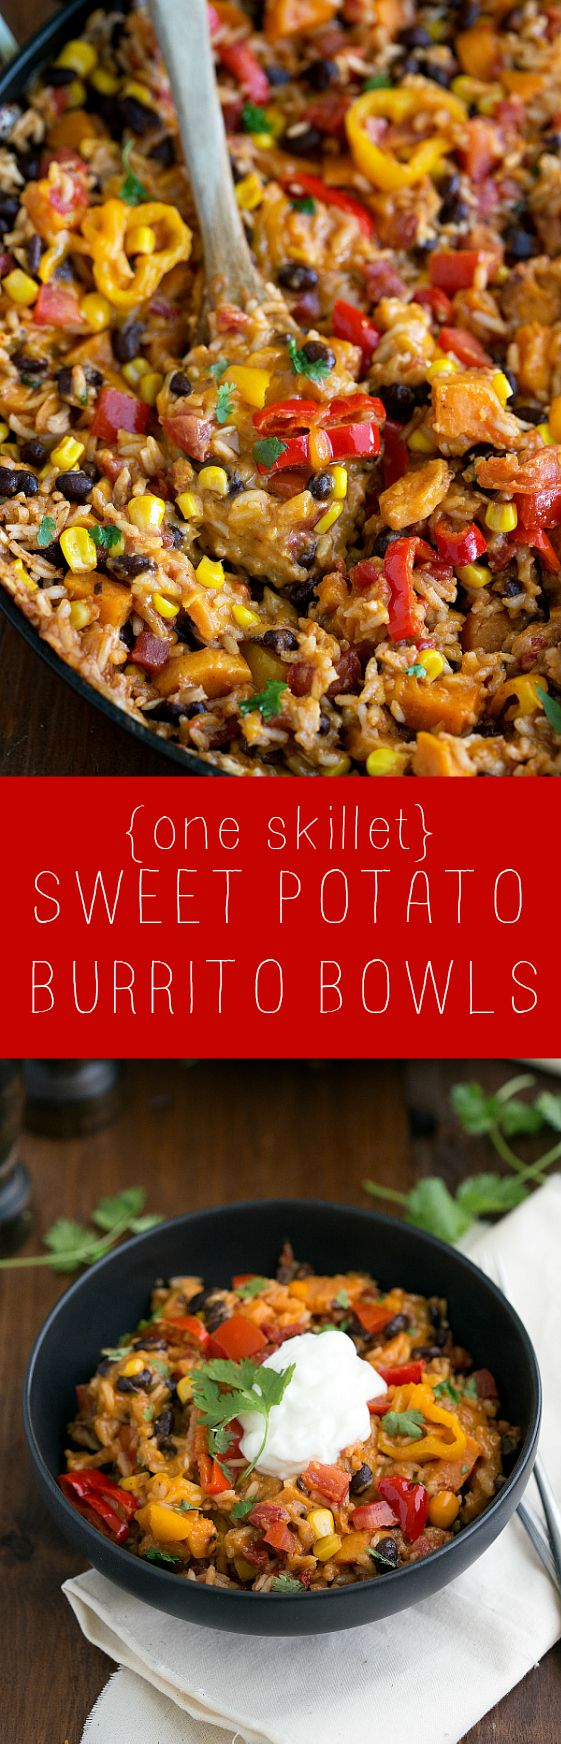 Easy and healthy ONE SKILLET Sweet Potato Burrito Bowls sub vegan cheese and cream